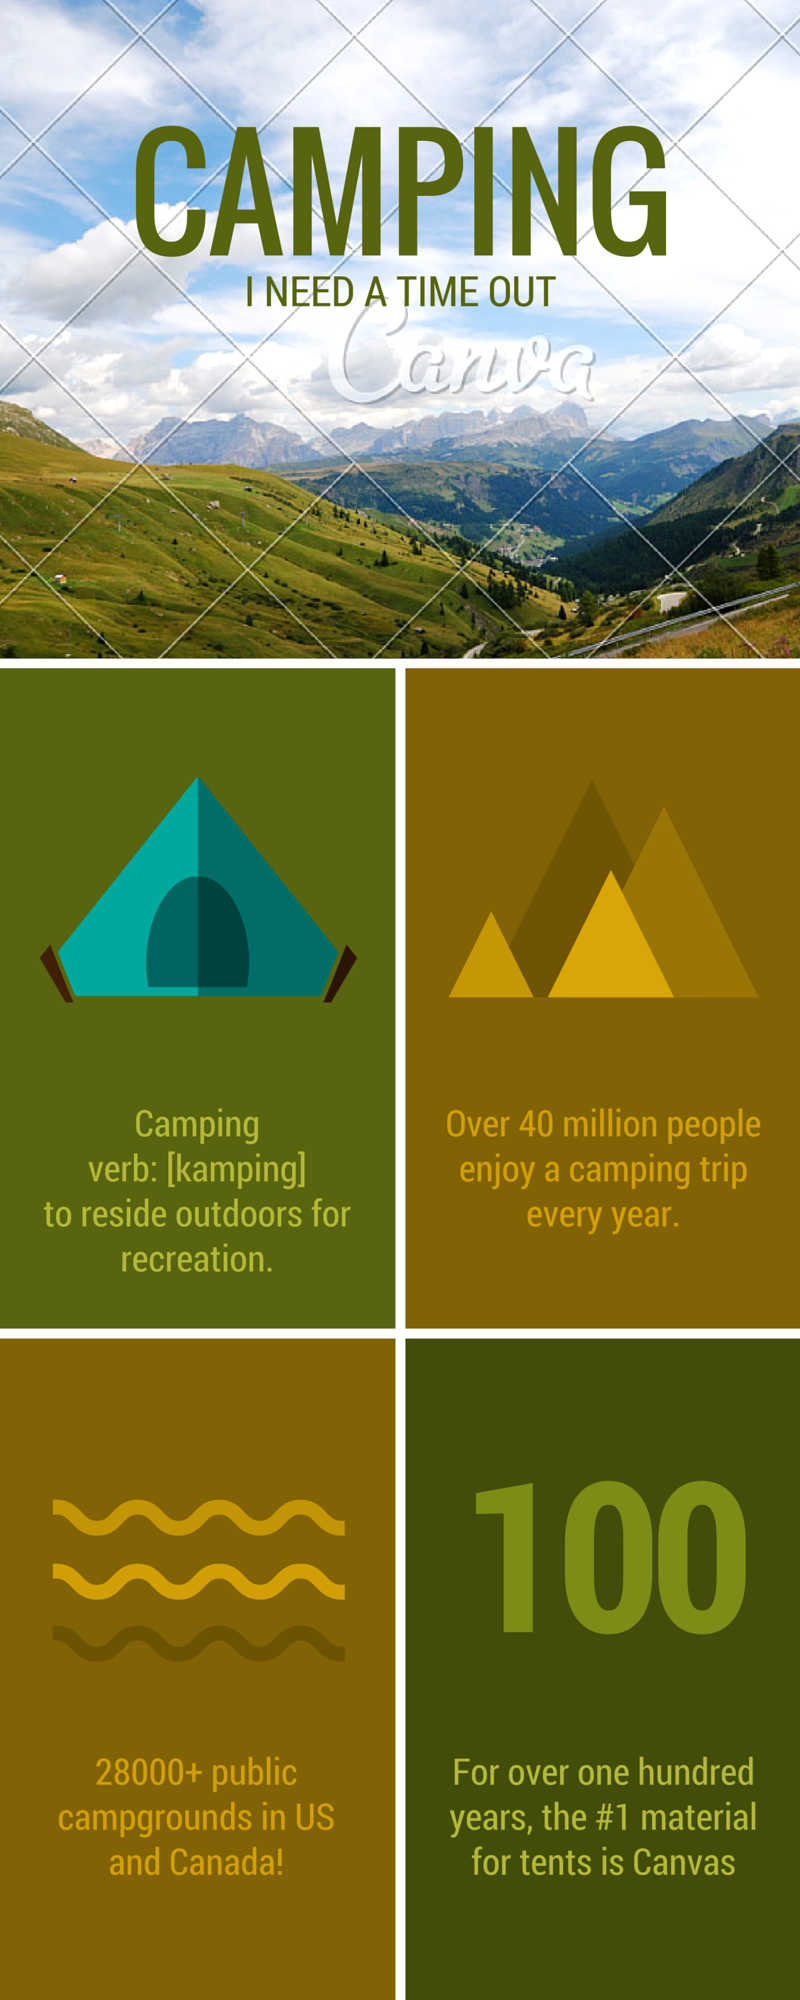 Camping - I Need A Time Out - Infographic